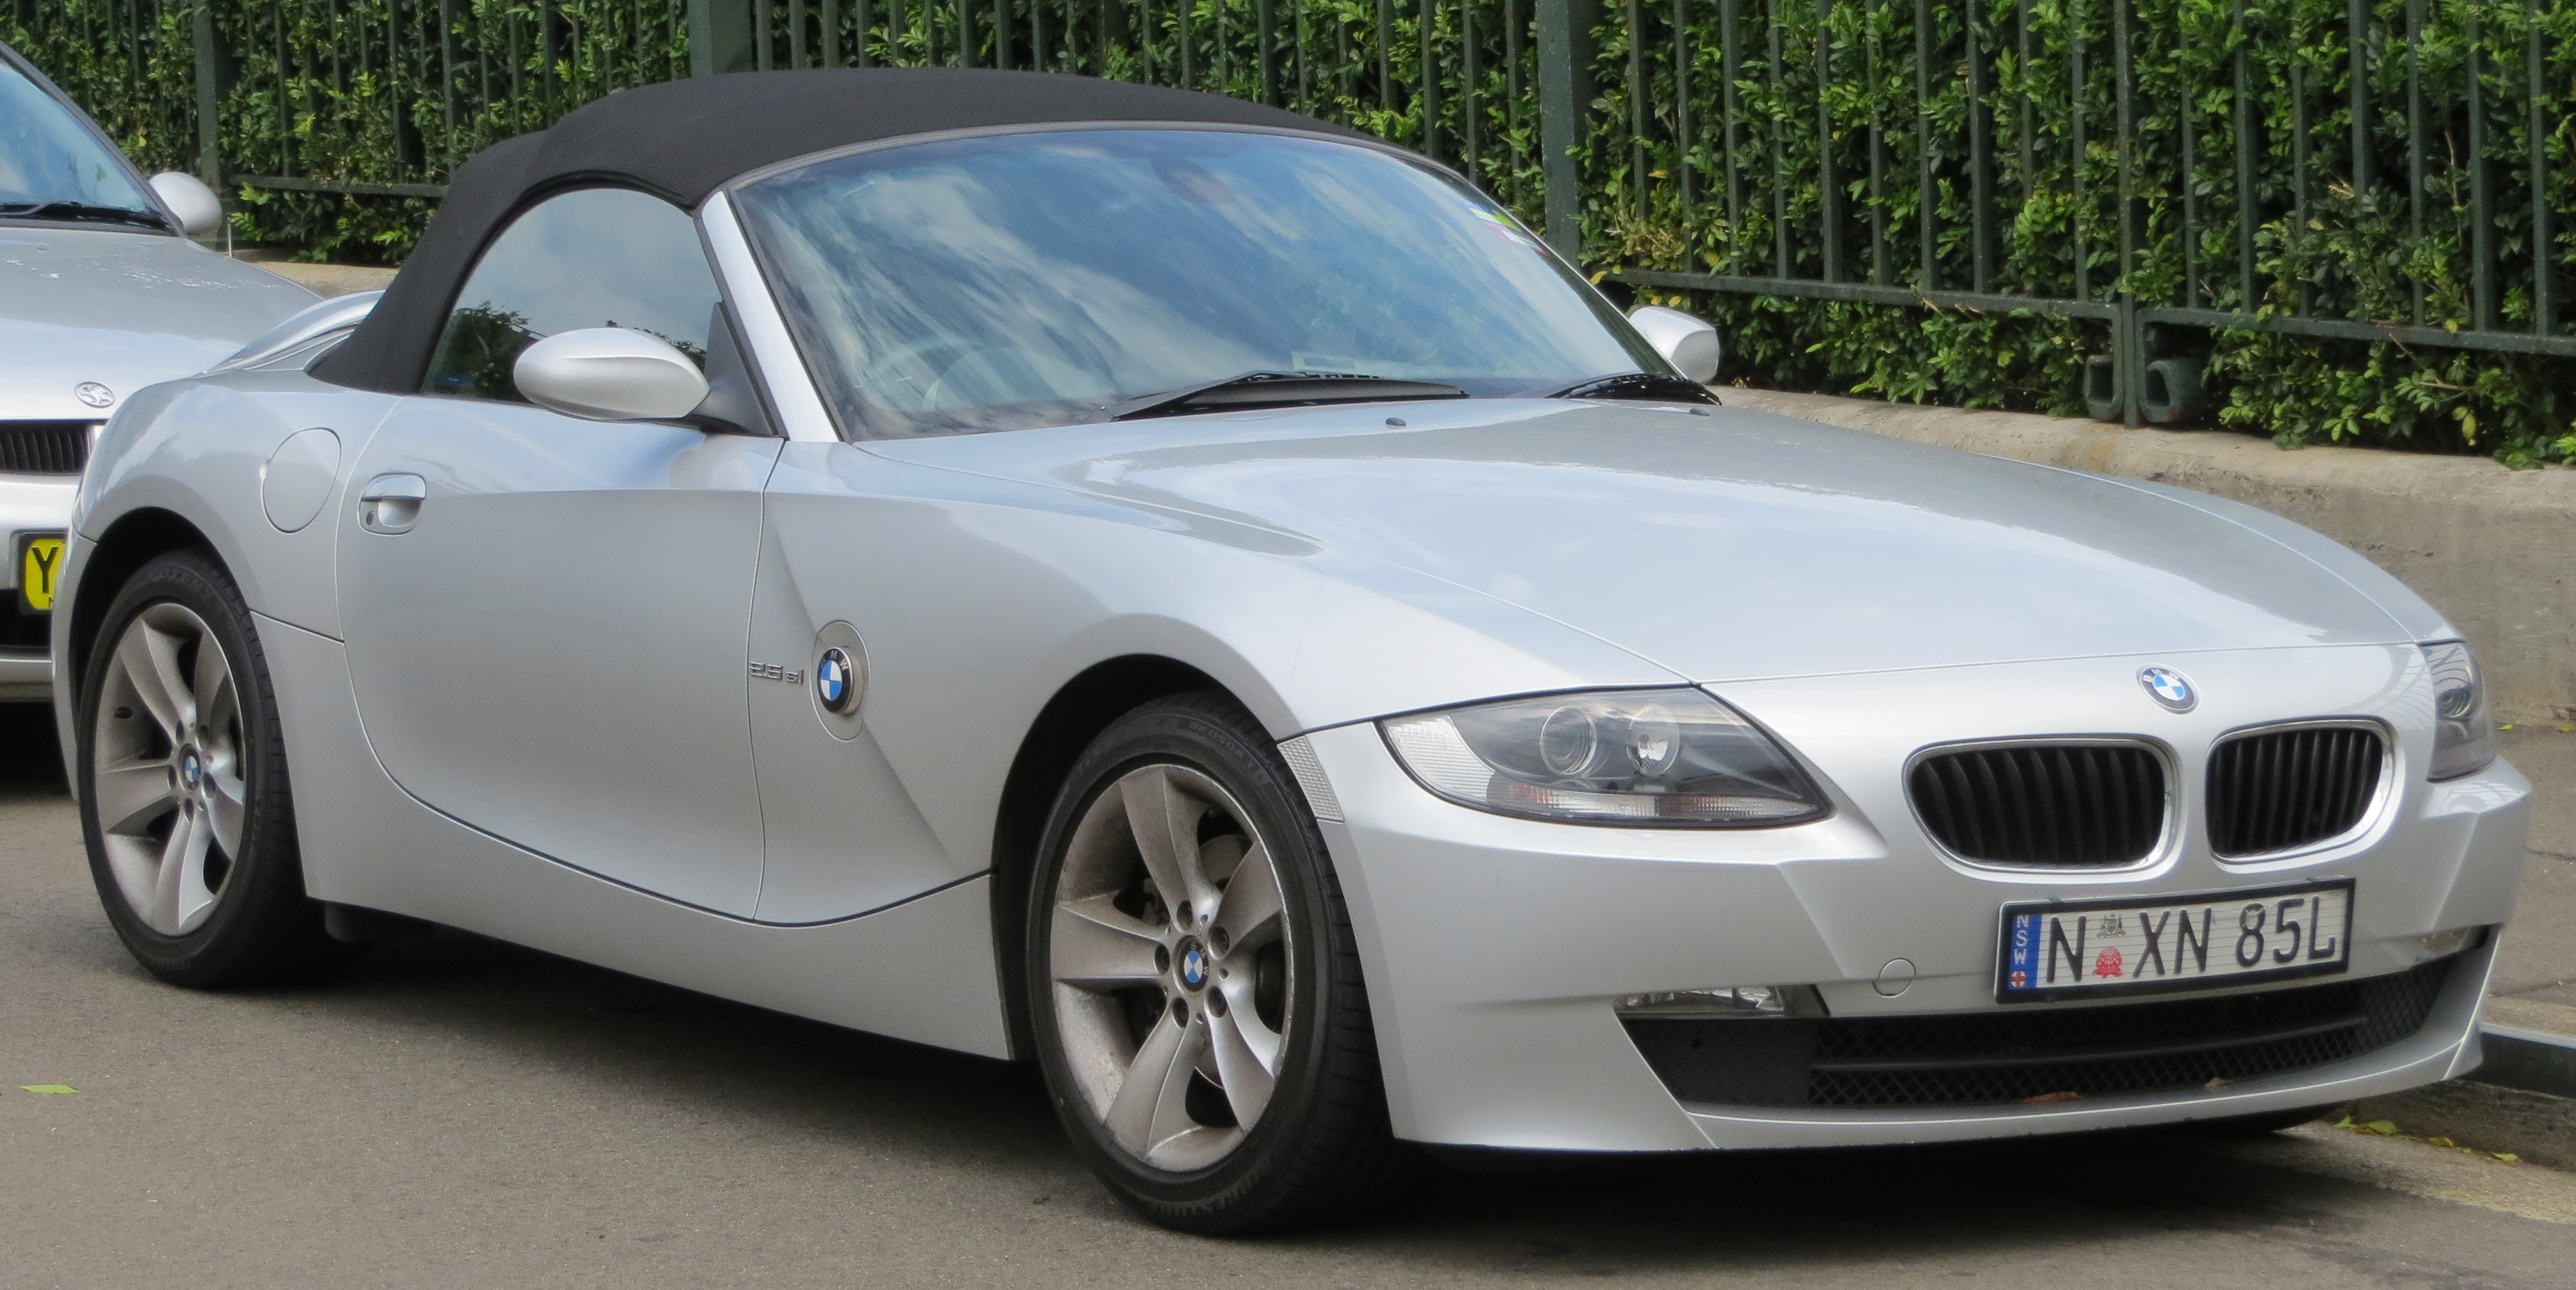 File 2006 Bmw Z4 E85 2 5si Convertible 2012 10 26 01